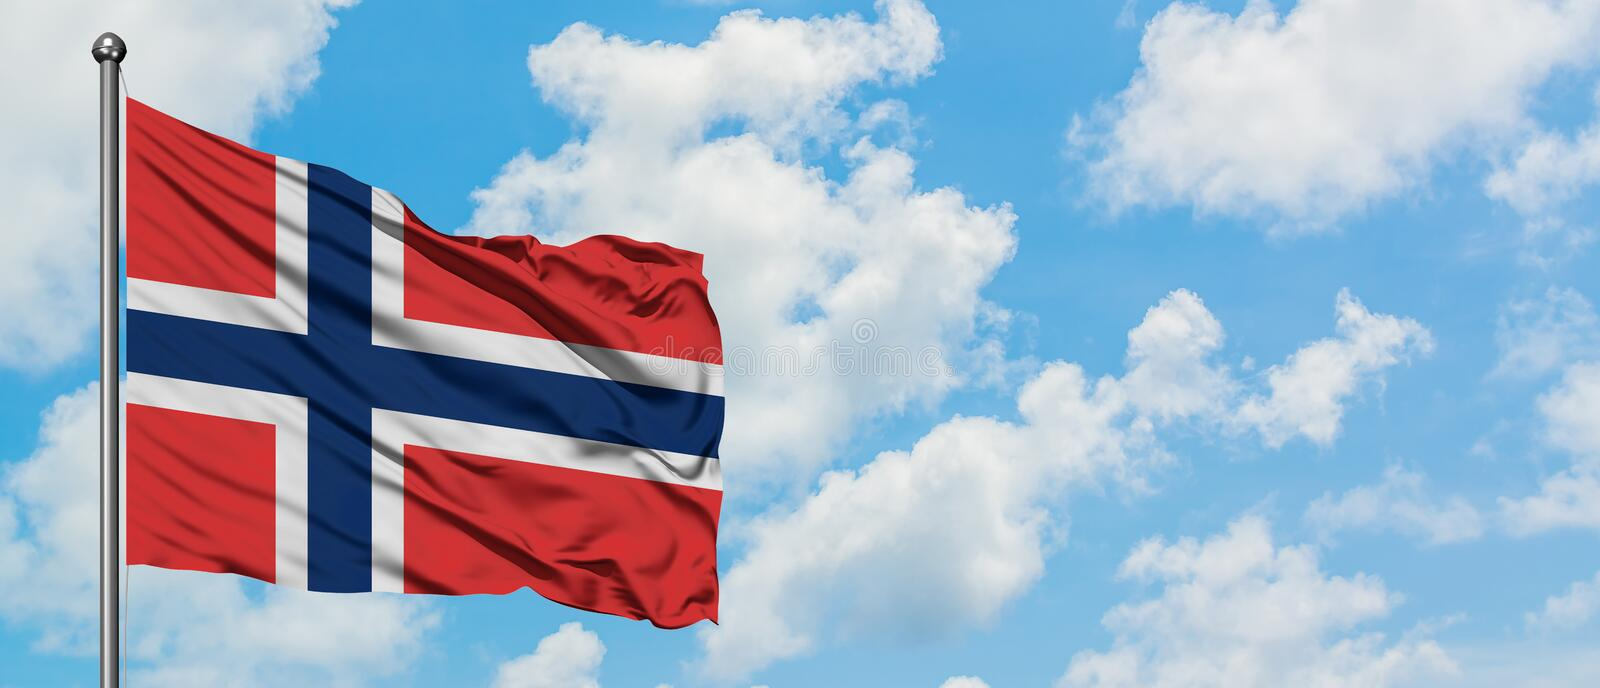 Norway flag waving in the wind against white cloudy blue sky. Diplomacy concept, international relations.  royalty free stock photo